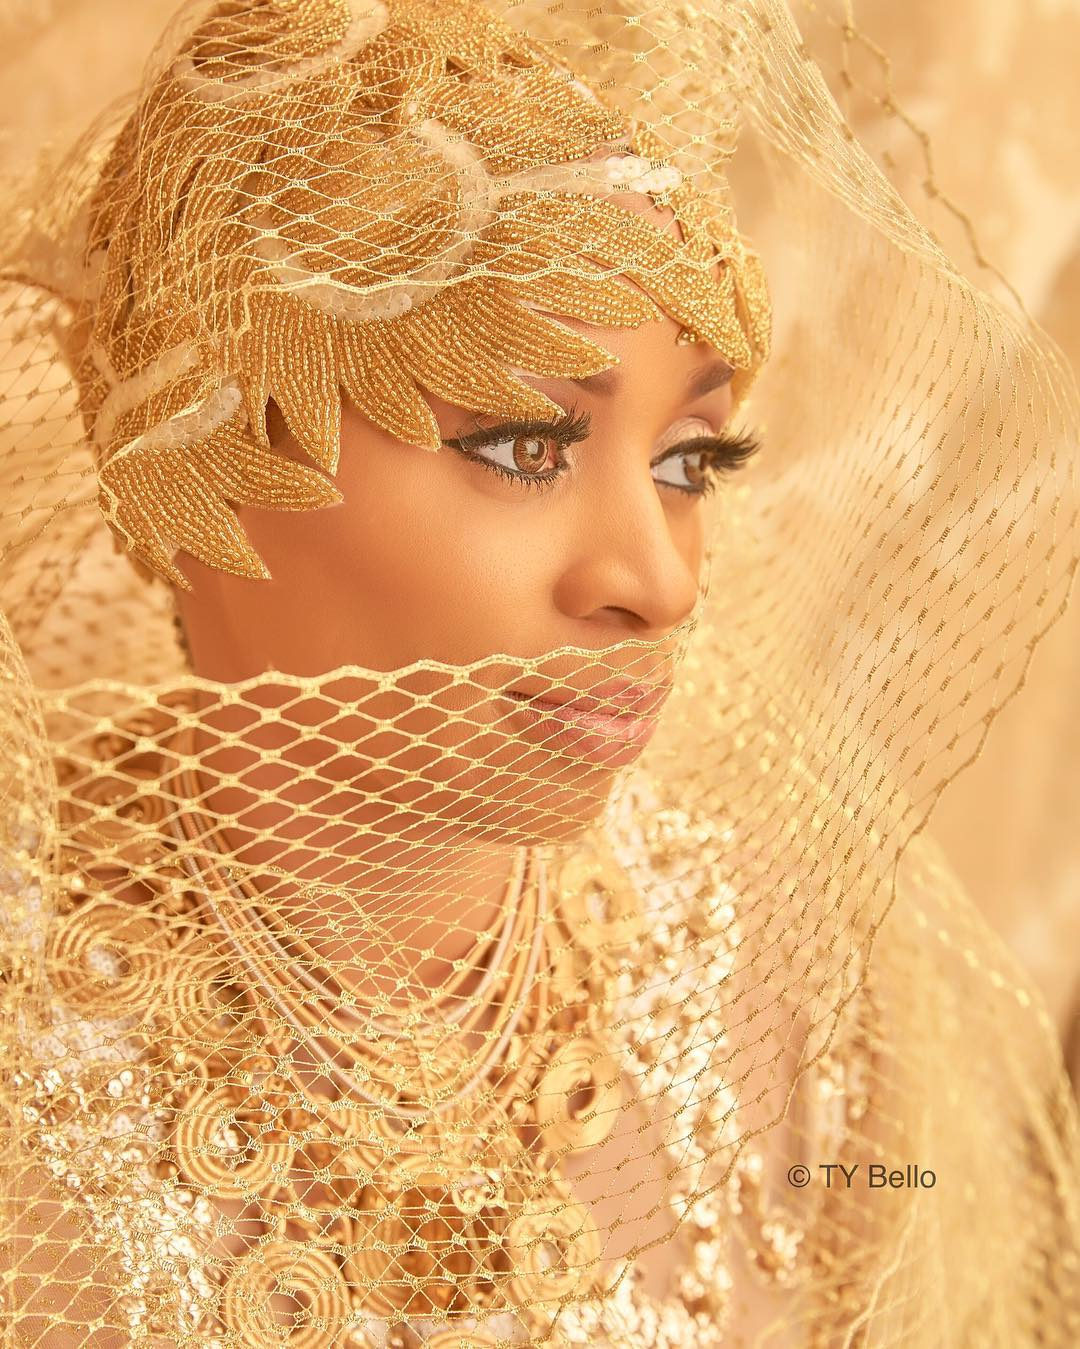 ty bello shade okoya - Fabulous 40th Birthday Portraits By TY Bello